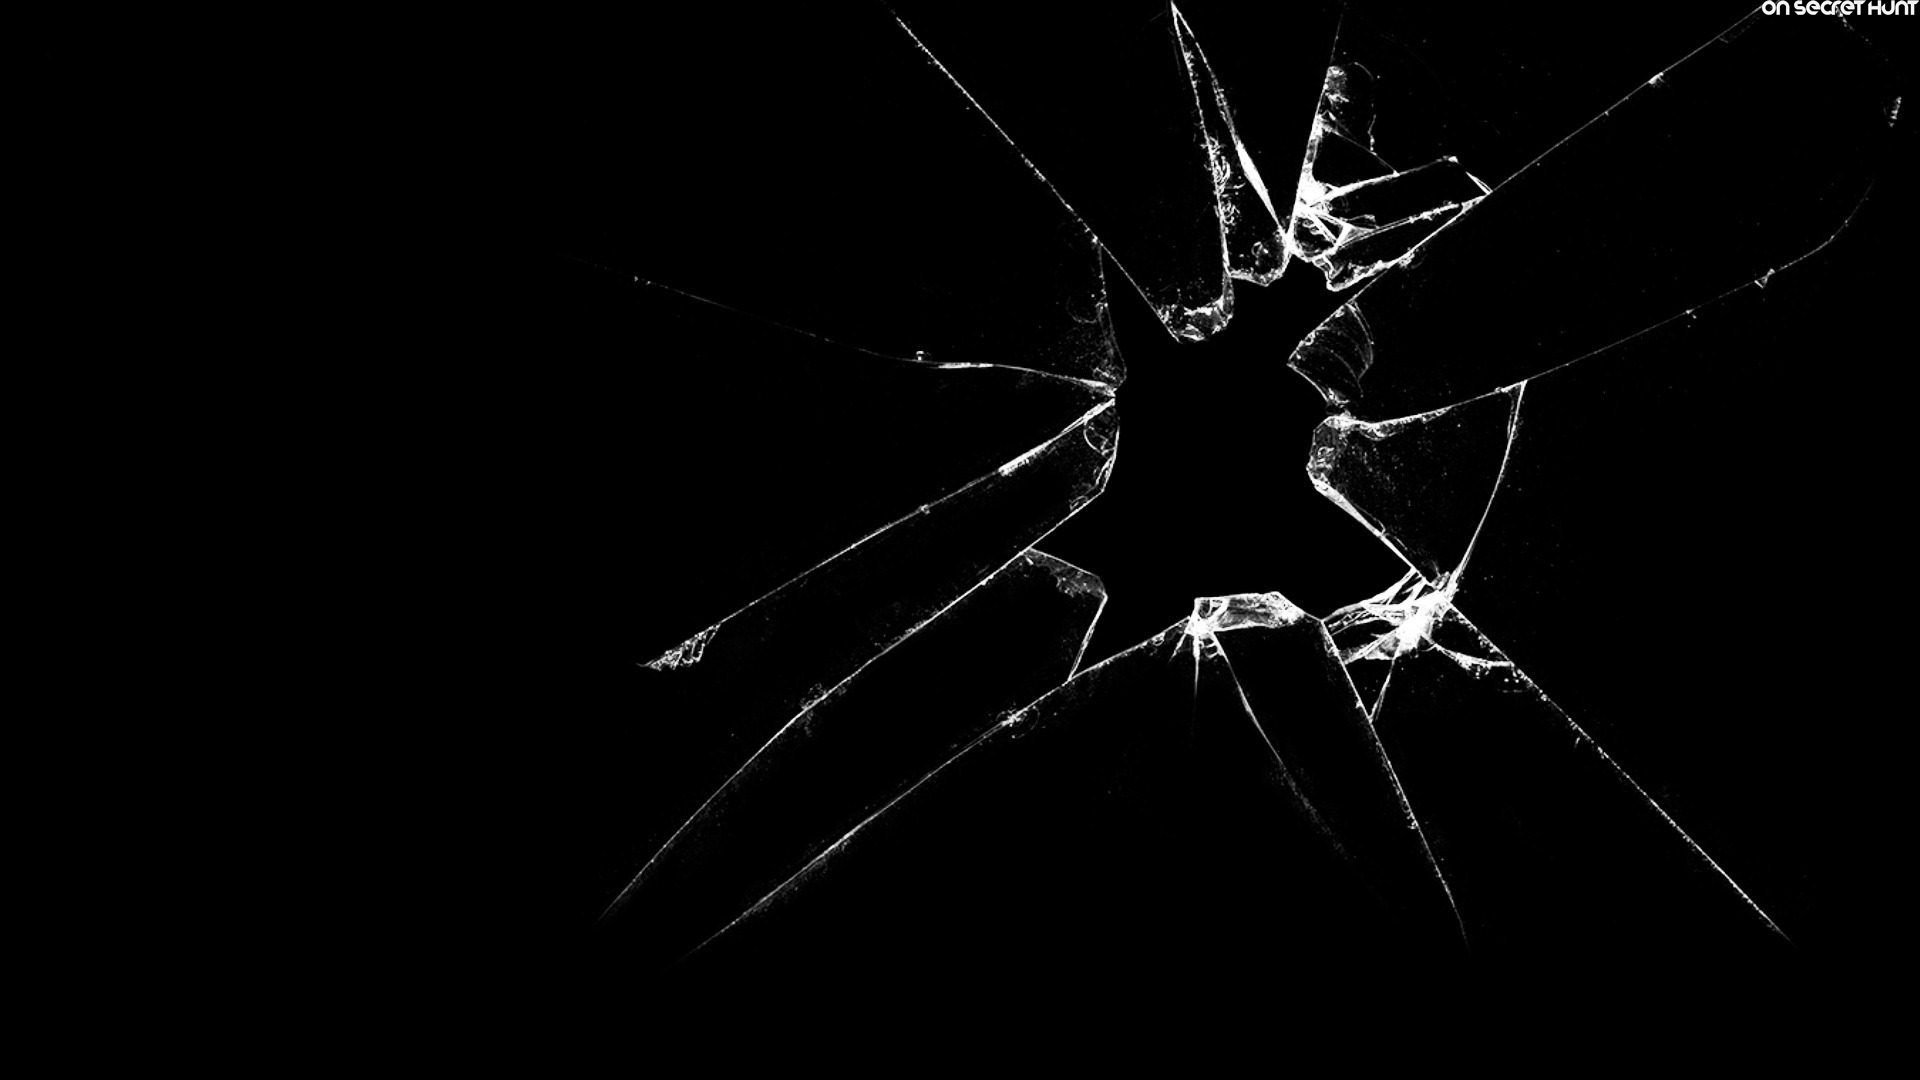 Cracked Screen Hd Wallpaper Background Image 1920x1080